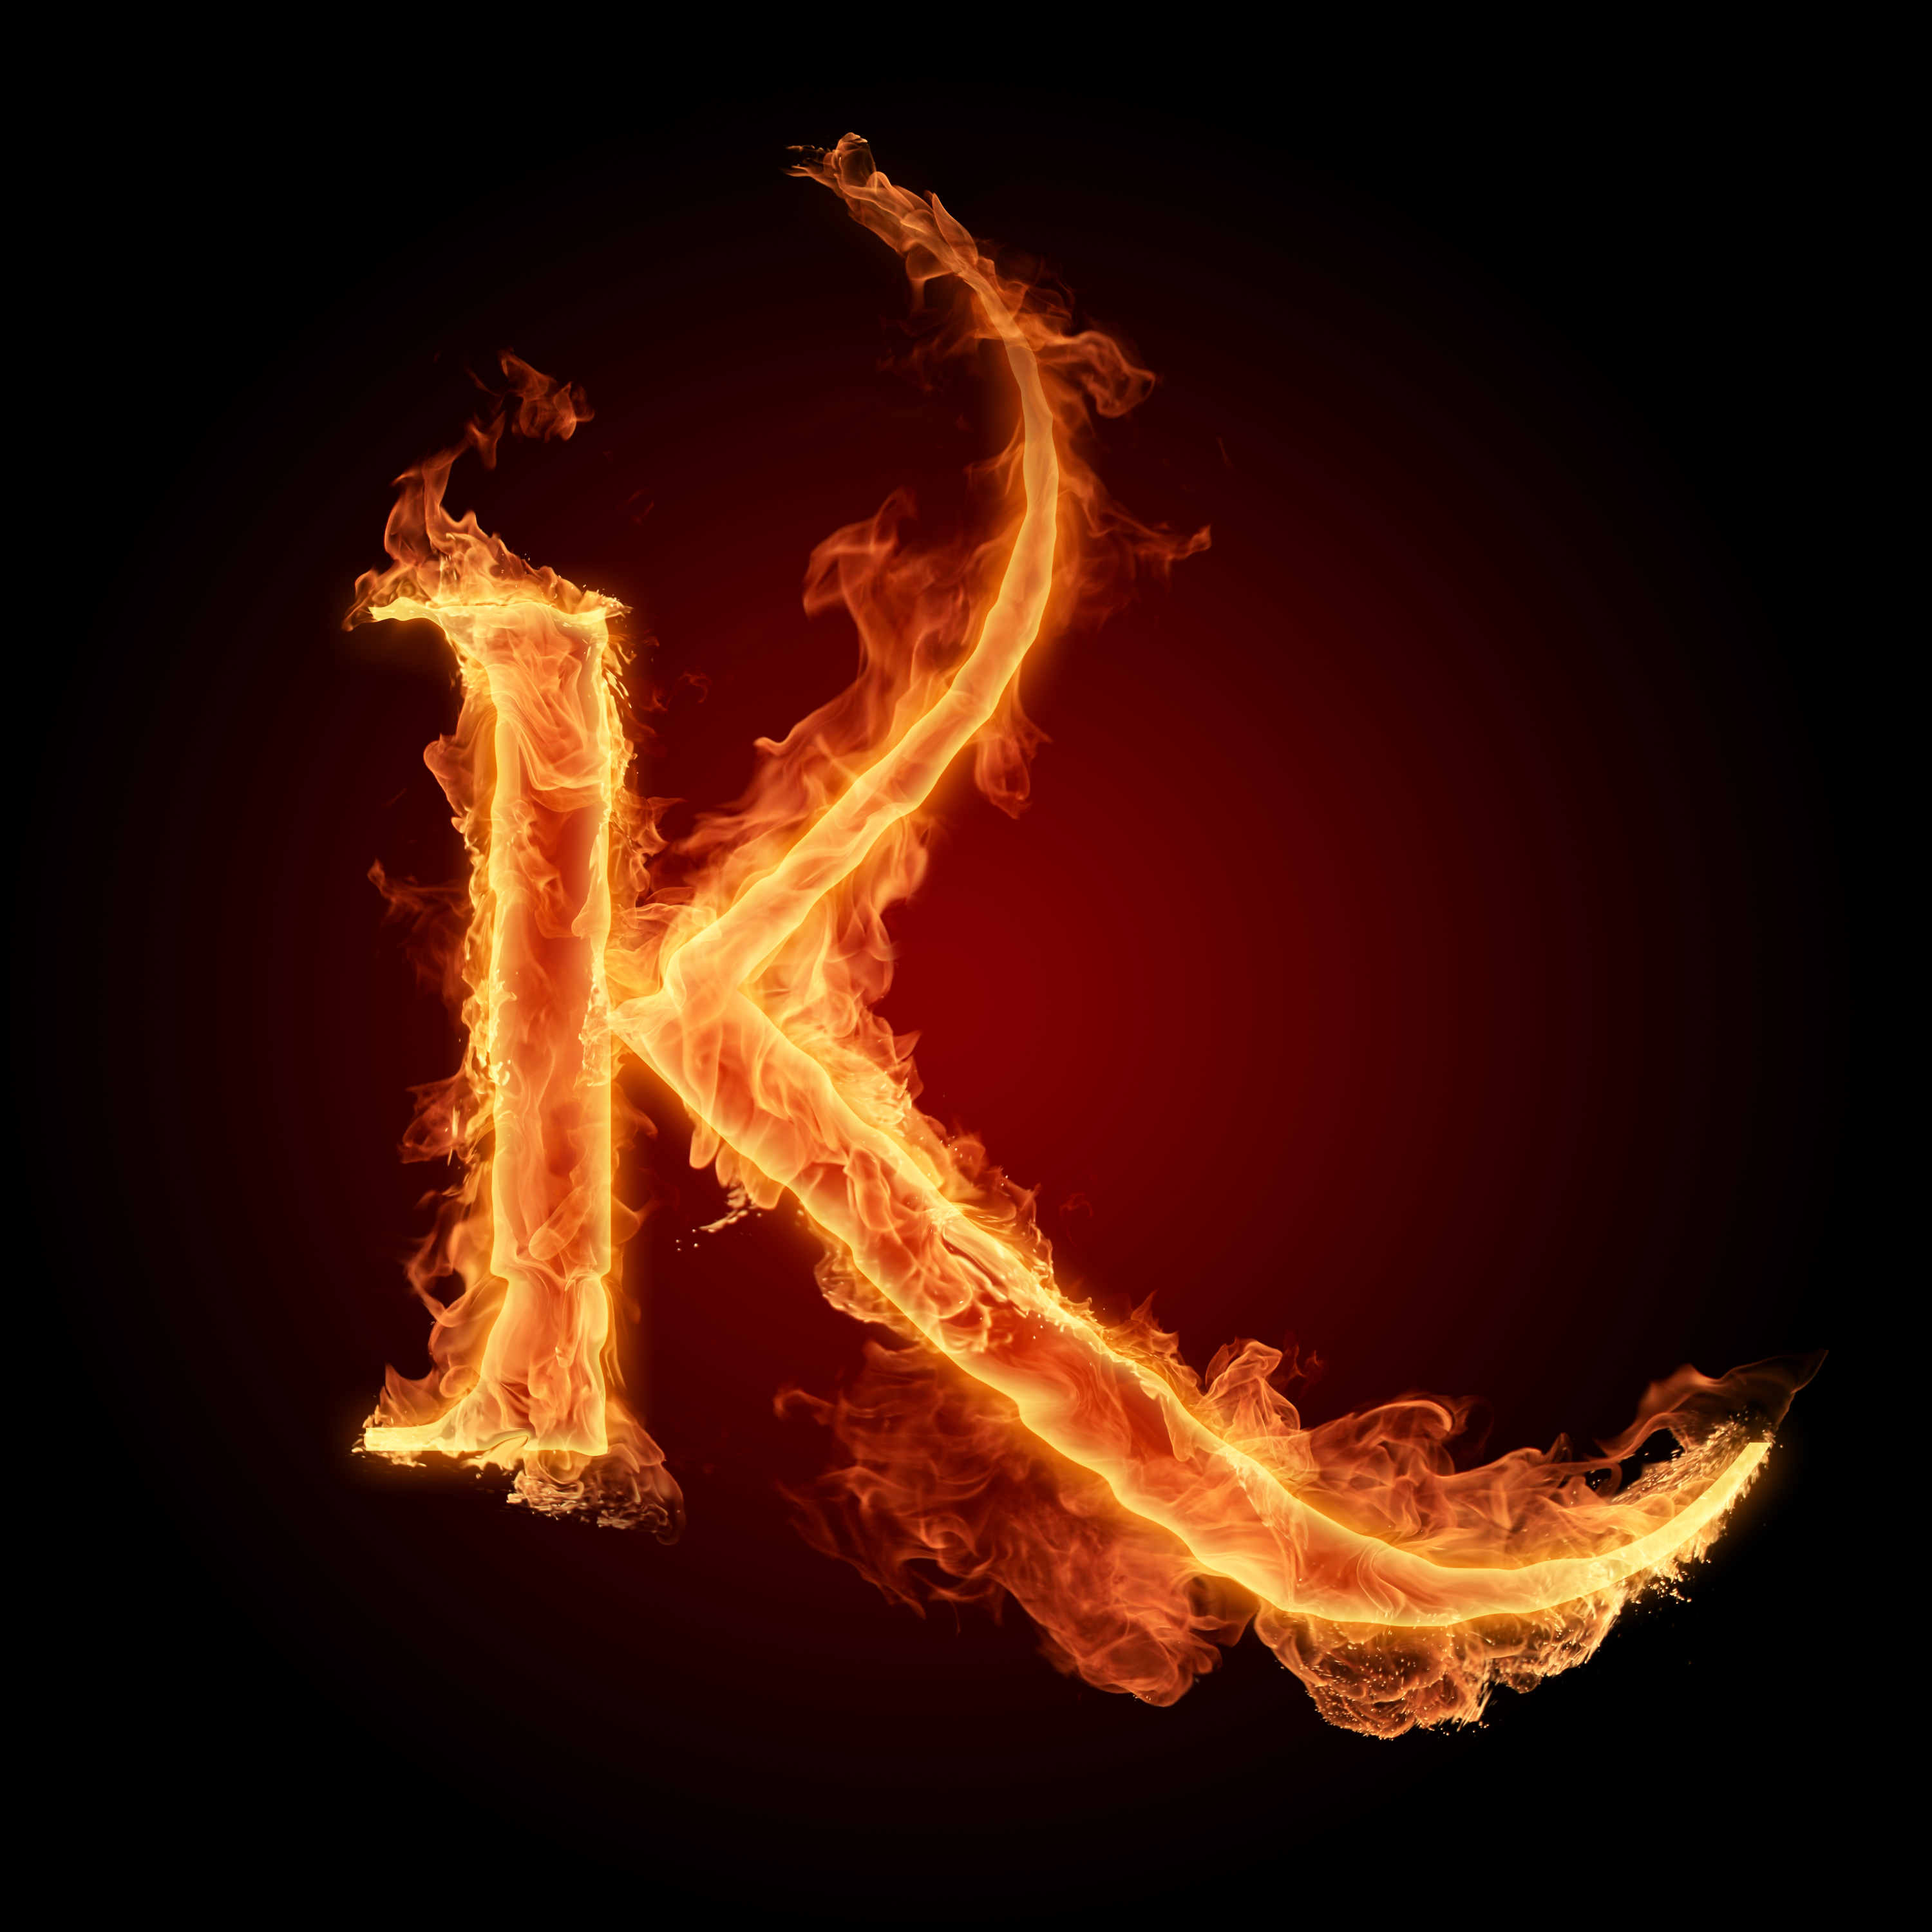 Fire Letters Wallpapers HD 3000X3000 A Z0 9   Photo 8 of 36 phombo 3000x3000